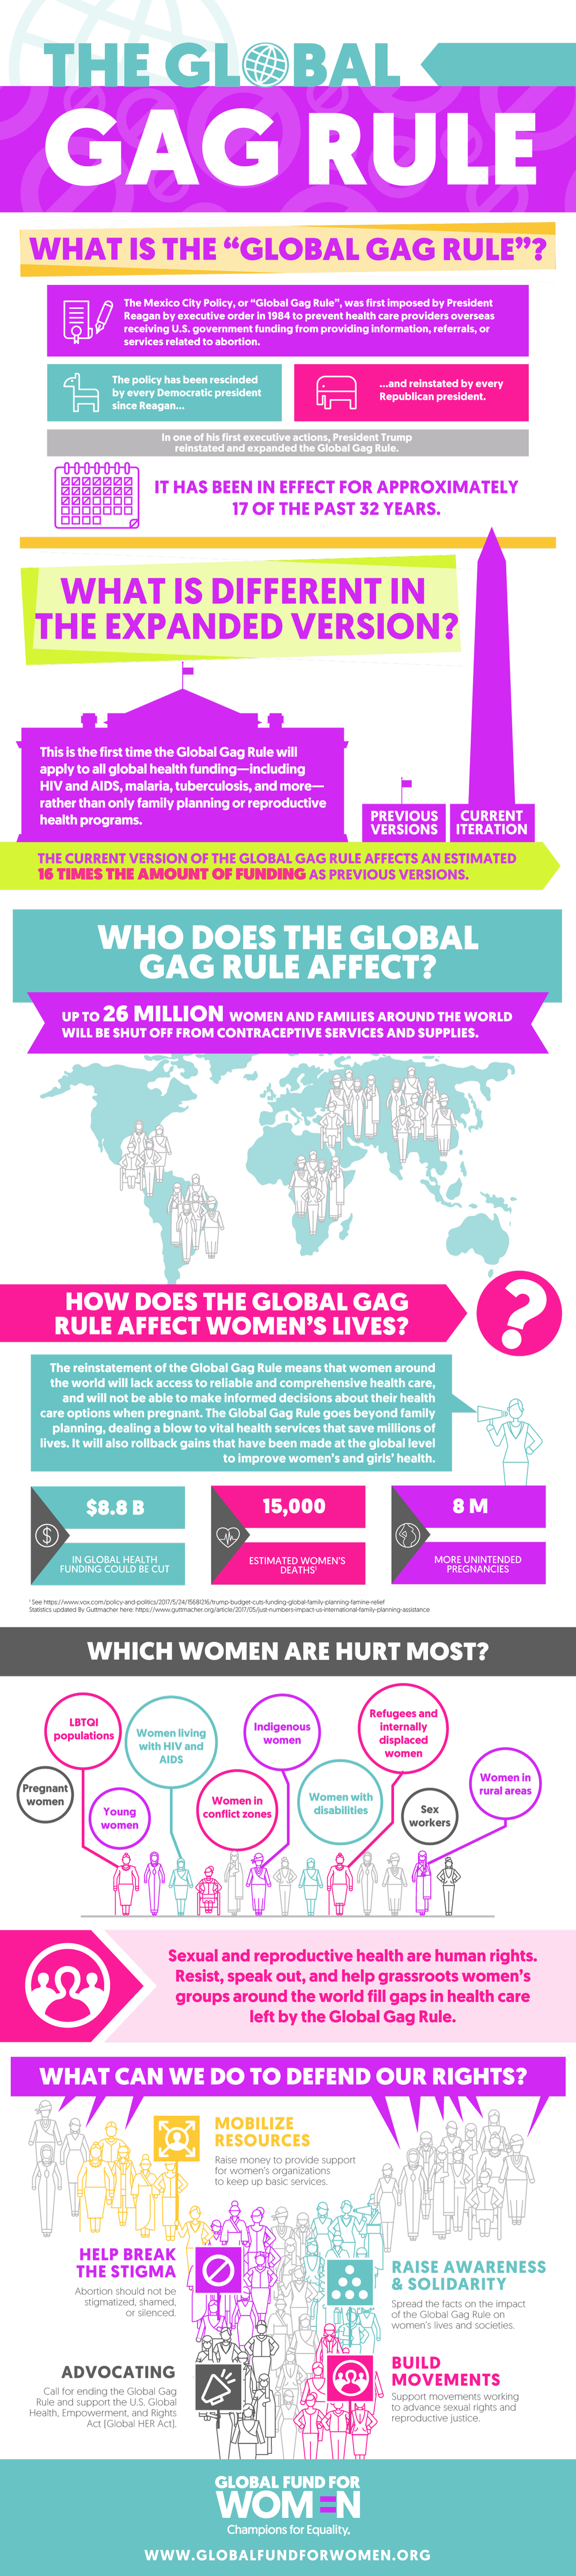 Global-Gag-Rule-Infographic-6.png